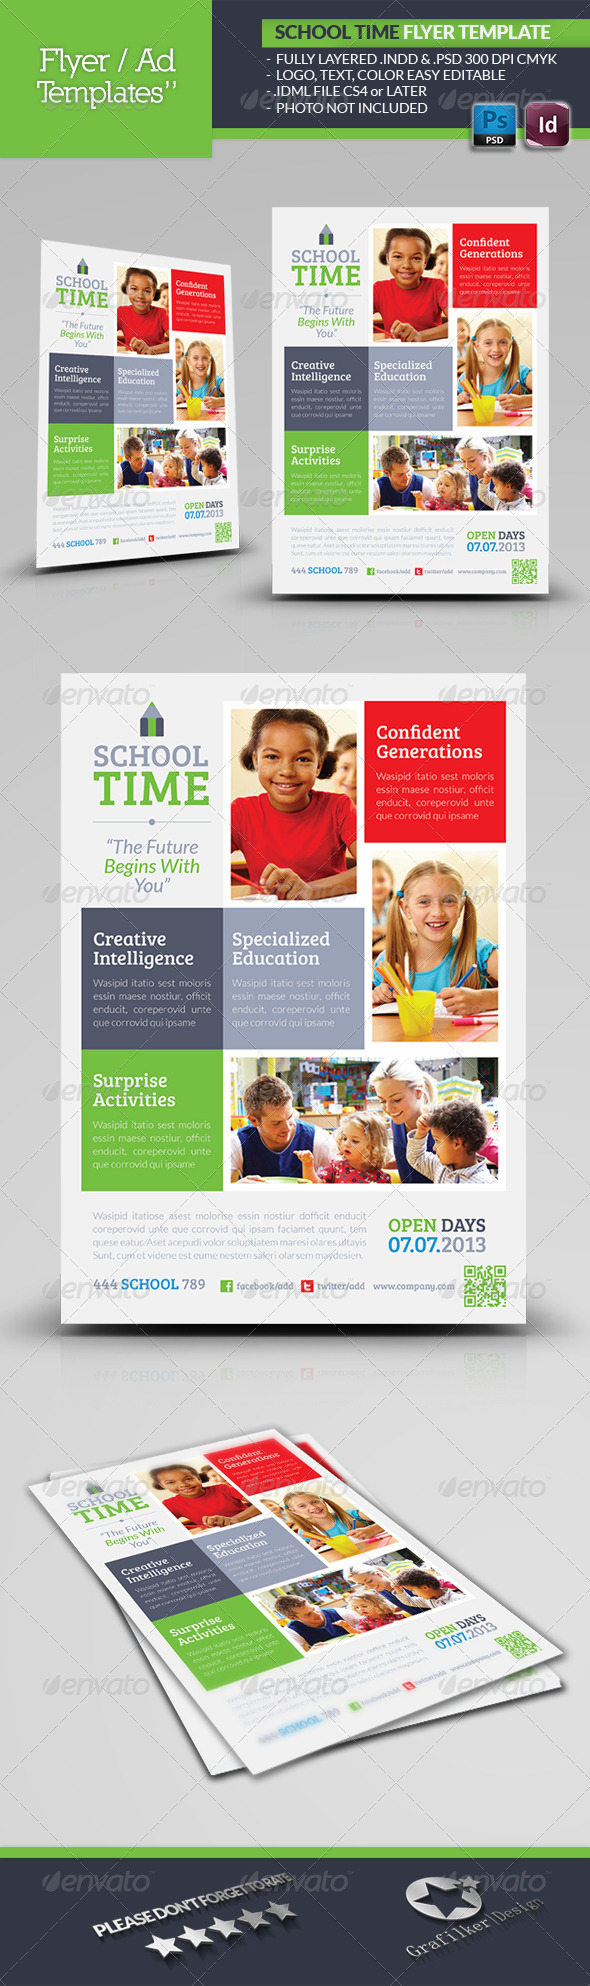 School Time Flyer Template - Corporate Flyers